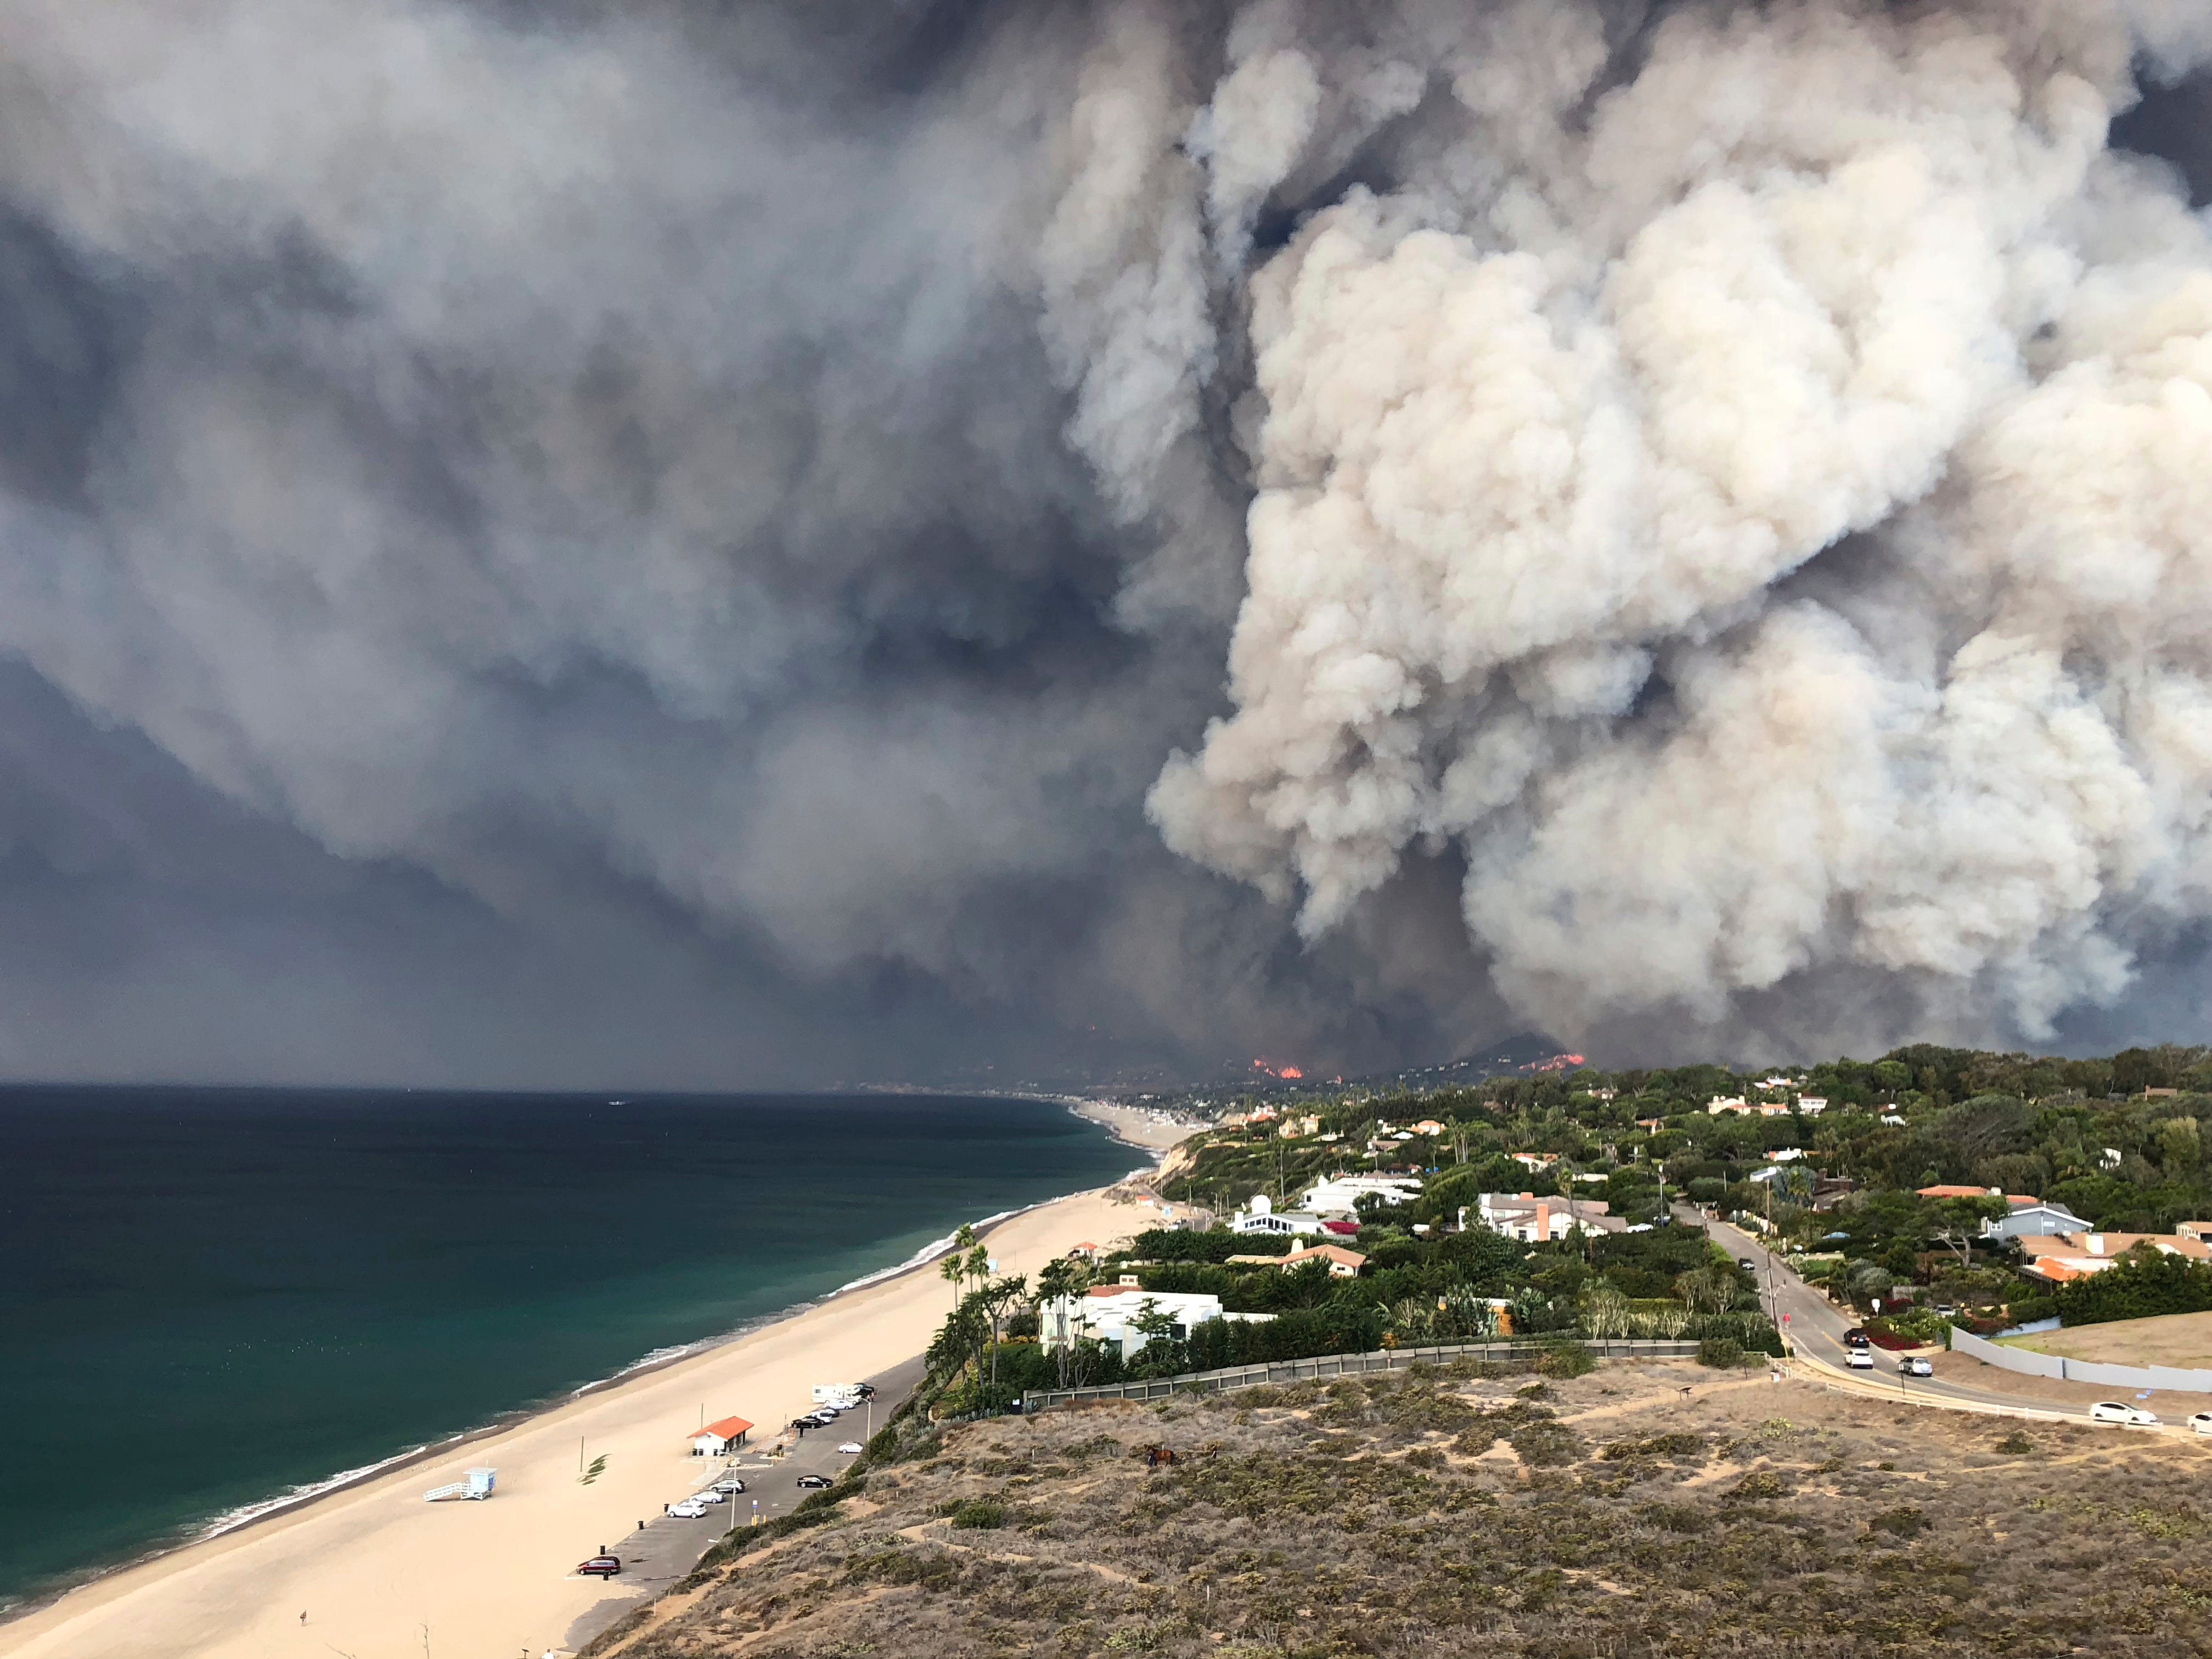 In this Friday, Nov. 9, 2018 photo, smoke from the wildires fills the air in Malibu, Calif.  Los Angeles County fire Chief Daryl Osby said Saturday that firefighters told him they were working in the toughest, most extreme conditions they had seen in their lives on Friday night. He says conditions are far better Saturday, with a lull in winds that are expected to return Sunday.